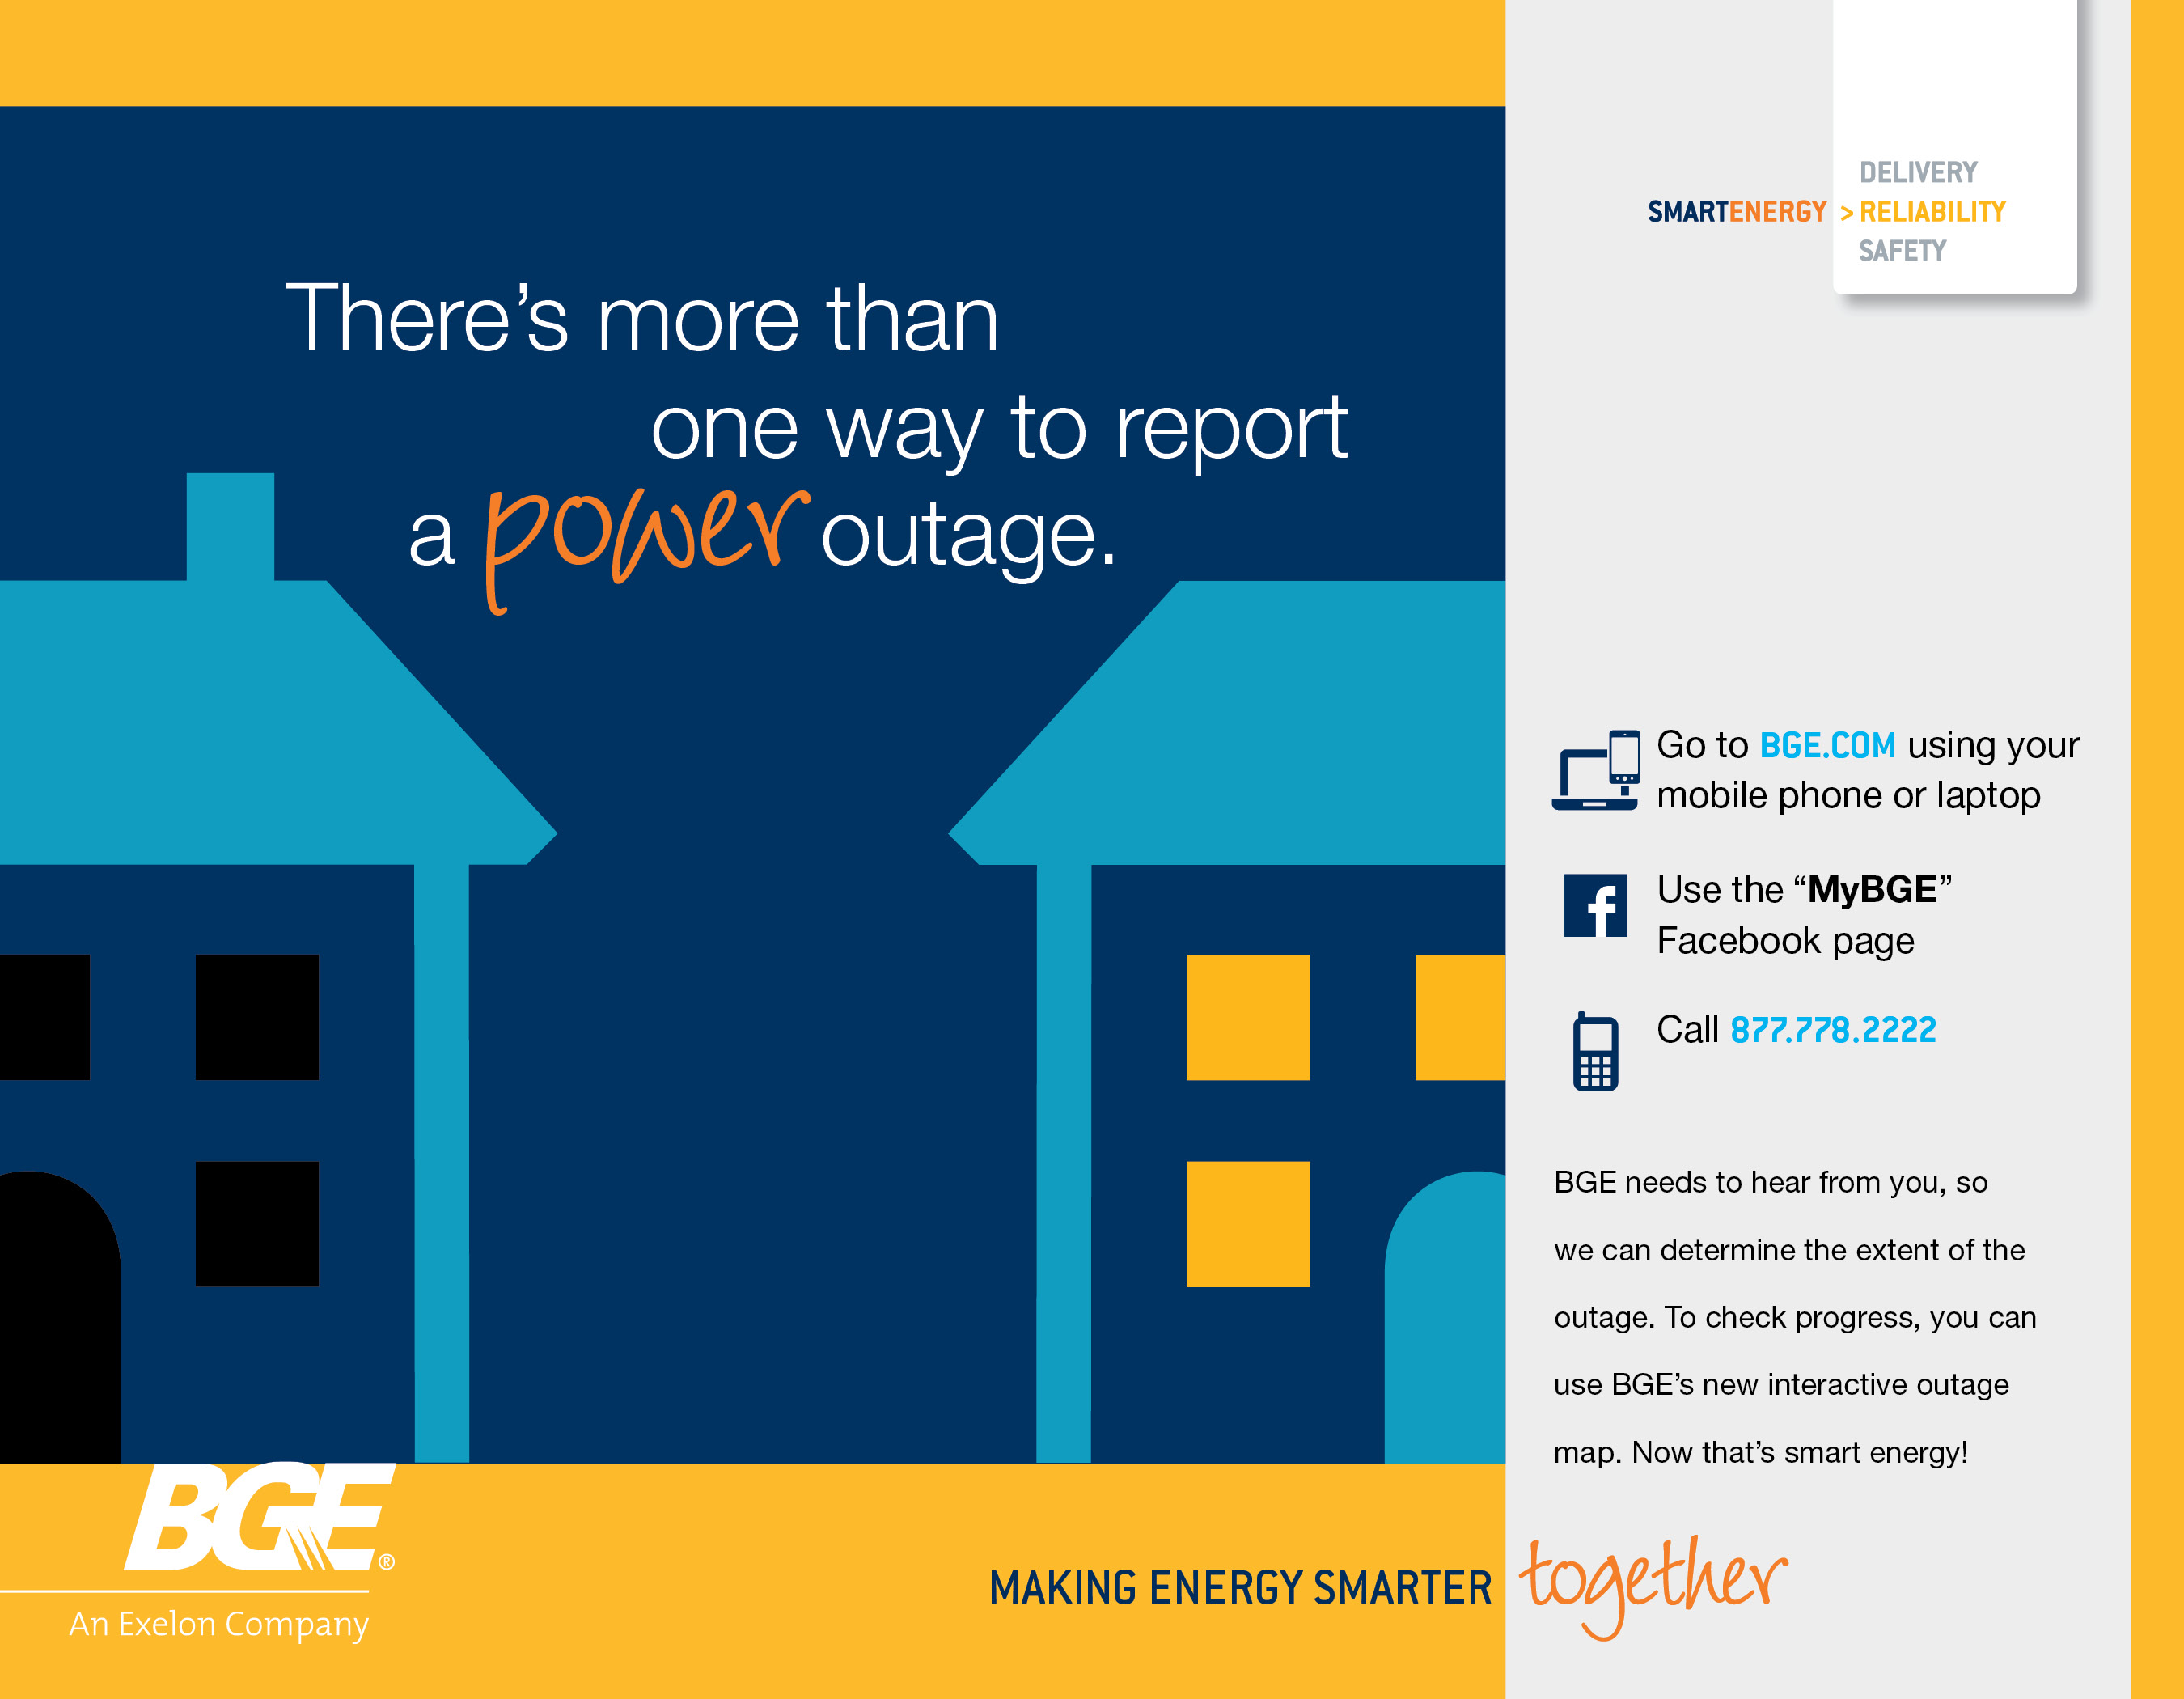 bge report outage